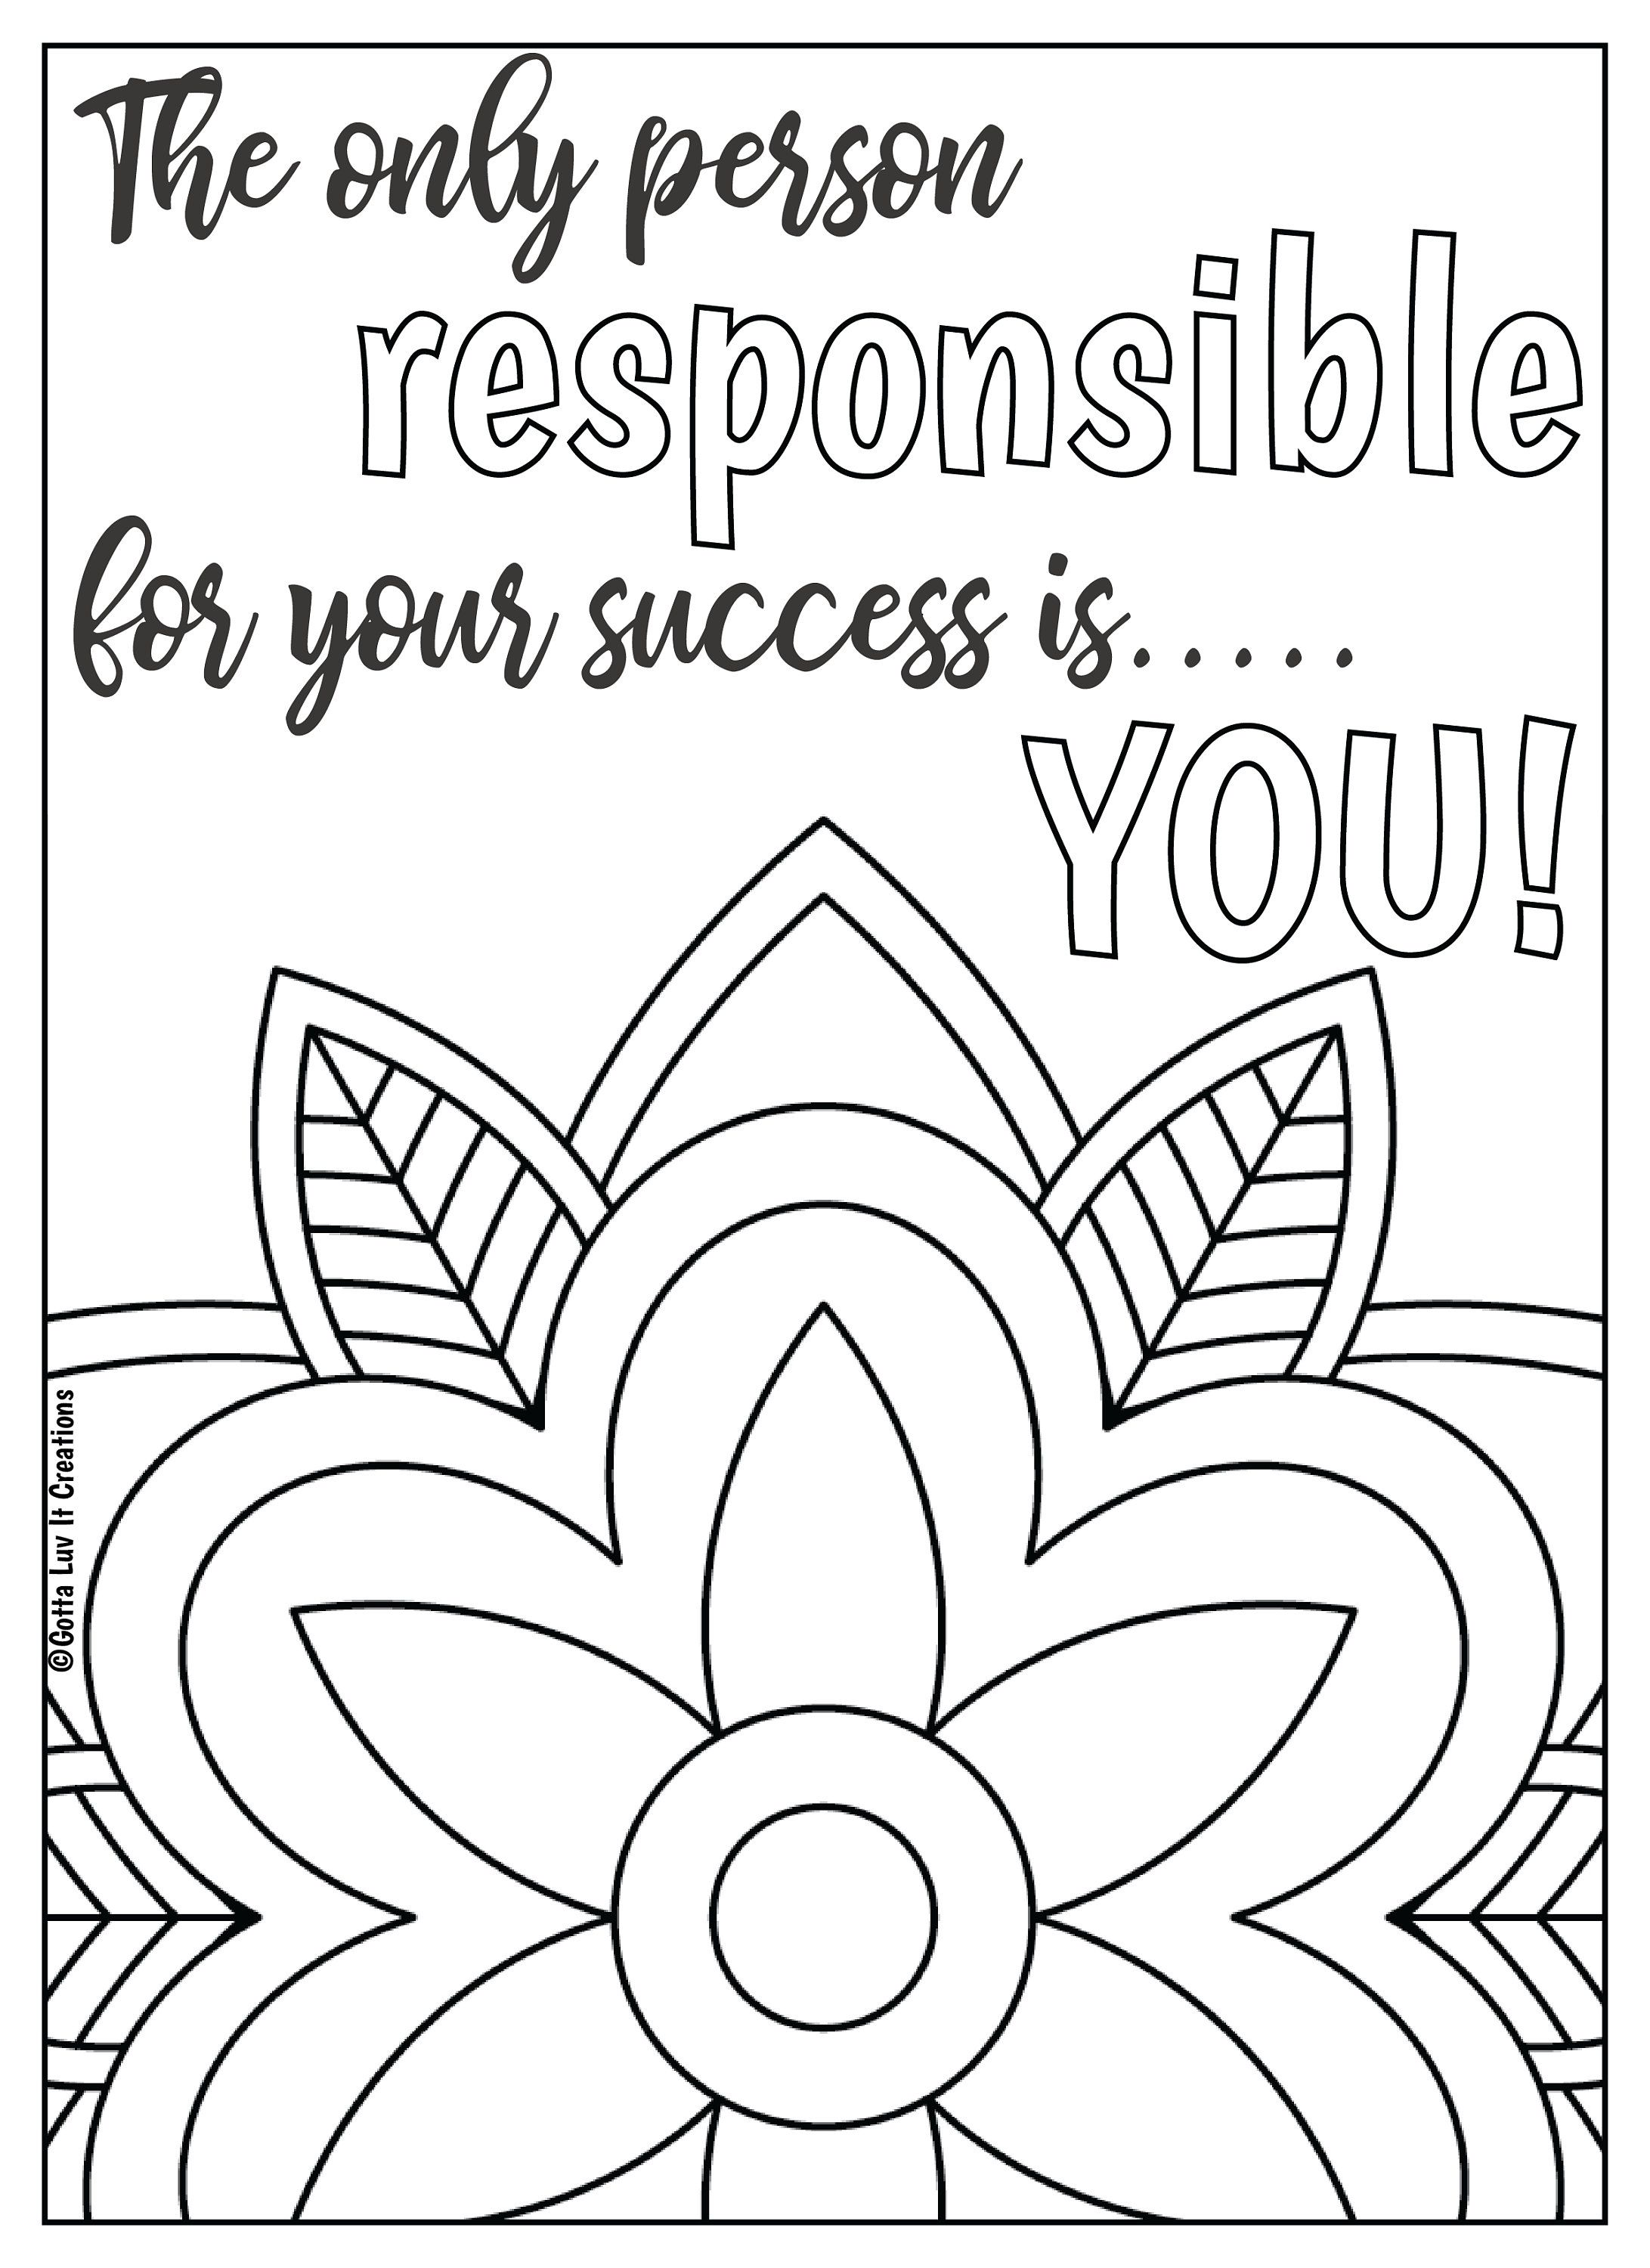 - 10 Mandala Motivational Coloring Pages Coloring Pages, Quote